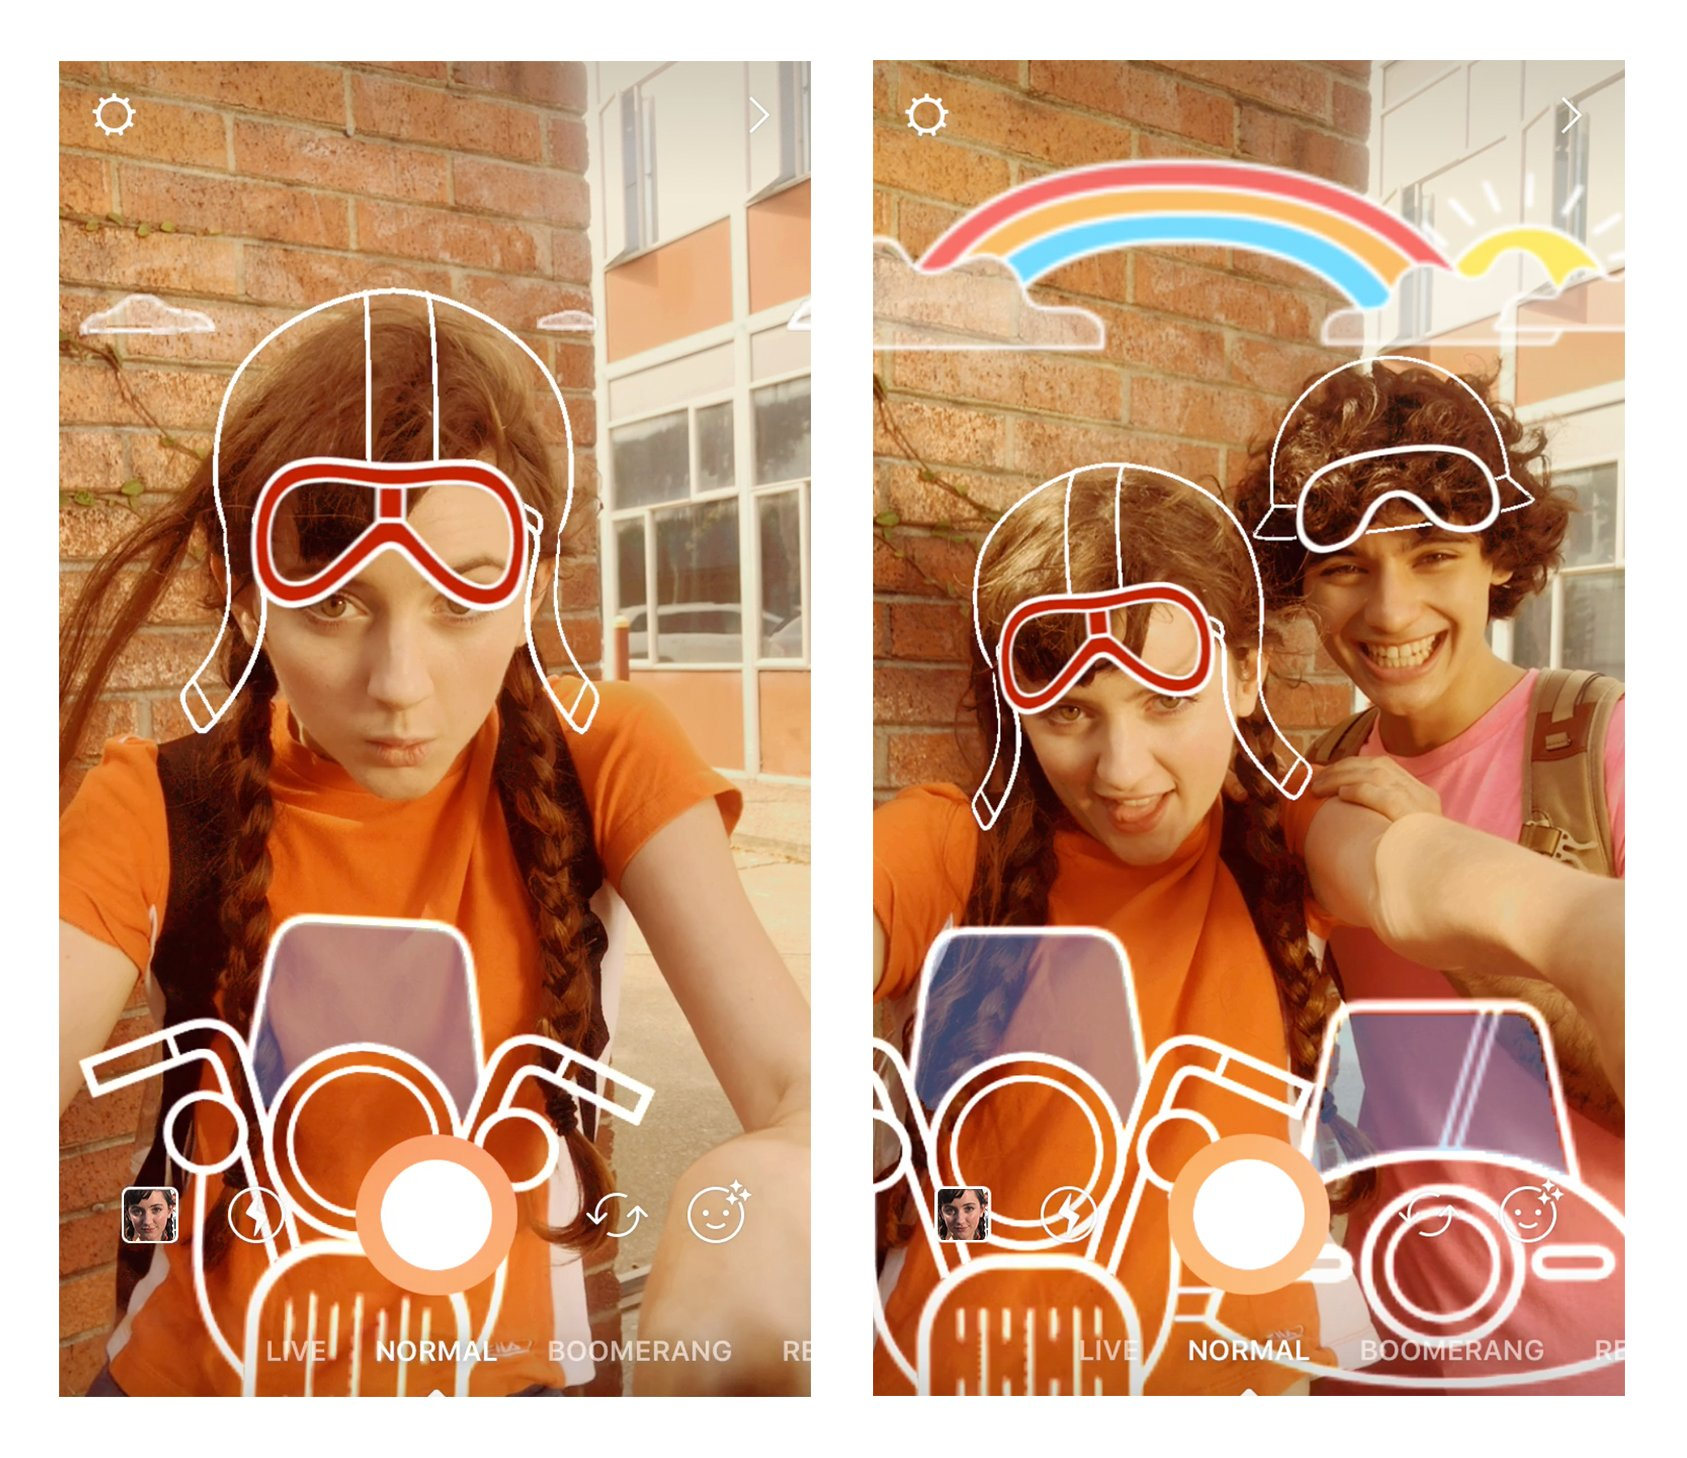 Grab a friend and set out on an adventure with our new face filter! �� �� https://t.co/Ml7wbdAPwj